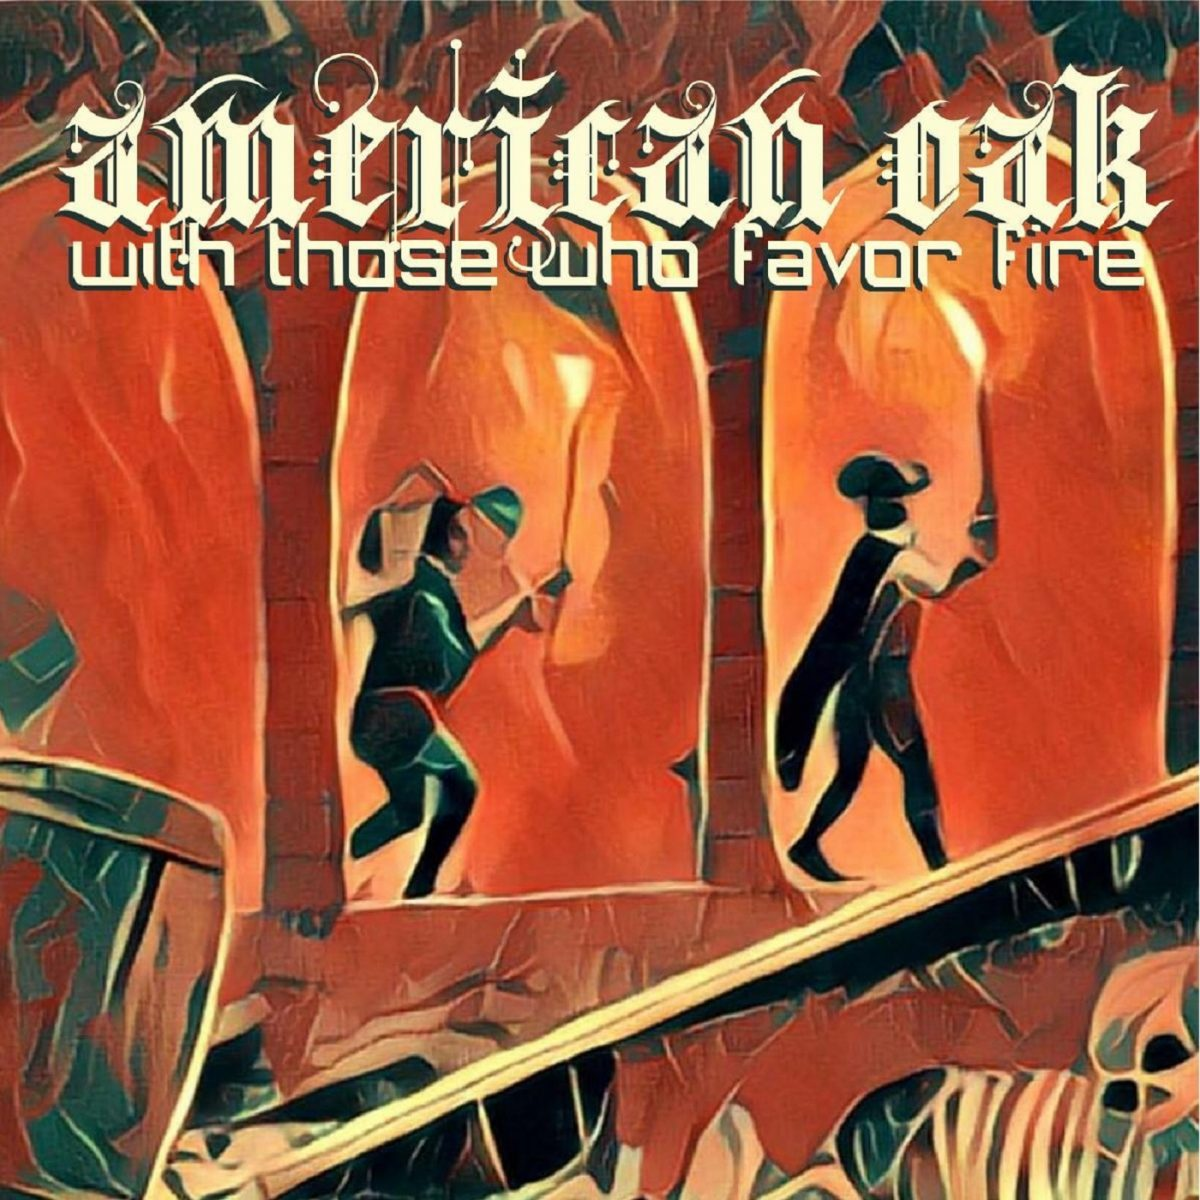 """American Oak - """"With Those Who Favor Fire"""" (Album)"""